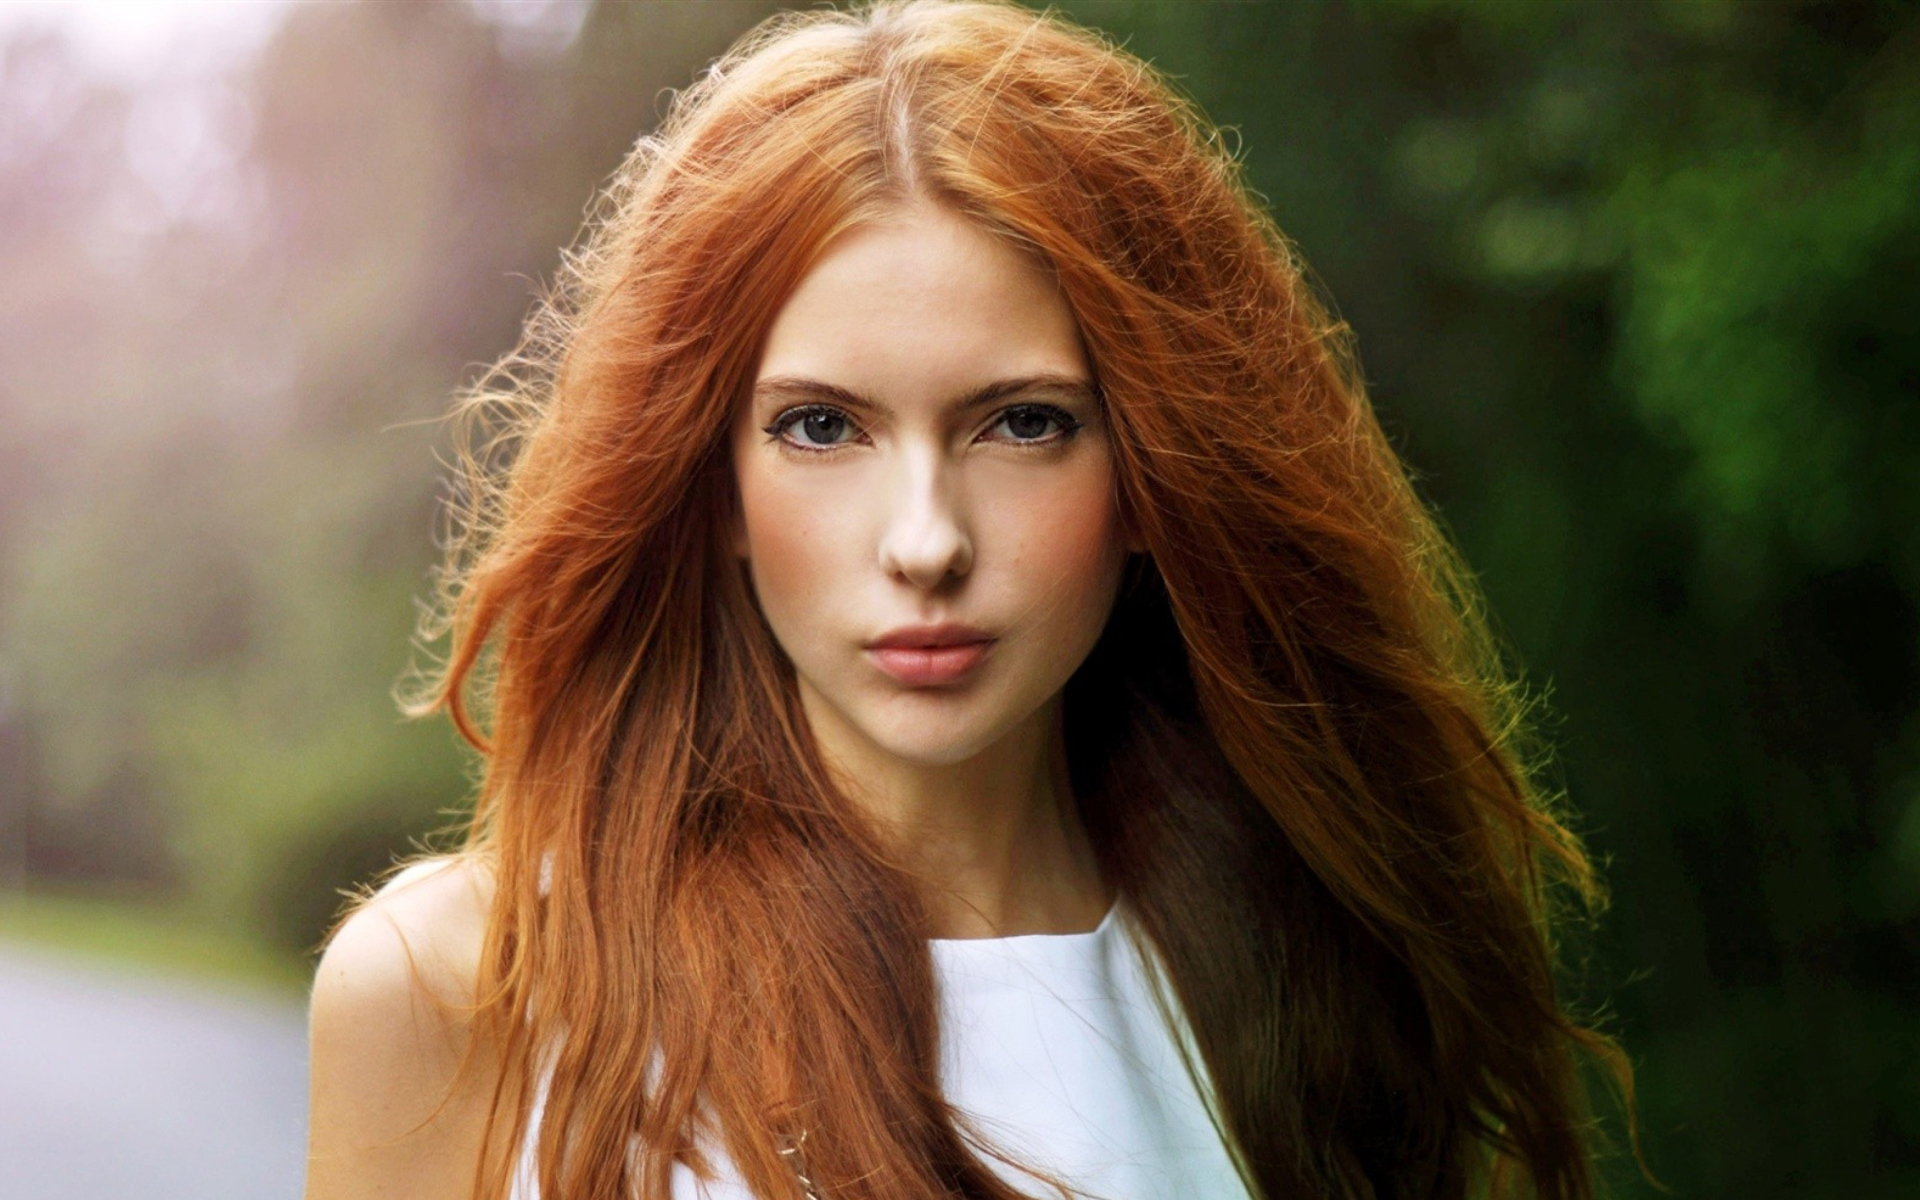 Beautiful Redhead Girl Wallpaper For Widescreen Desktop PC 1920x1080